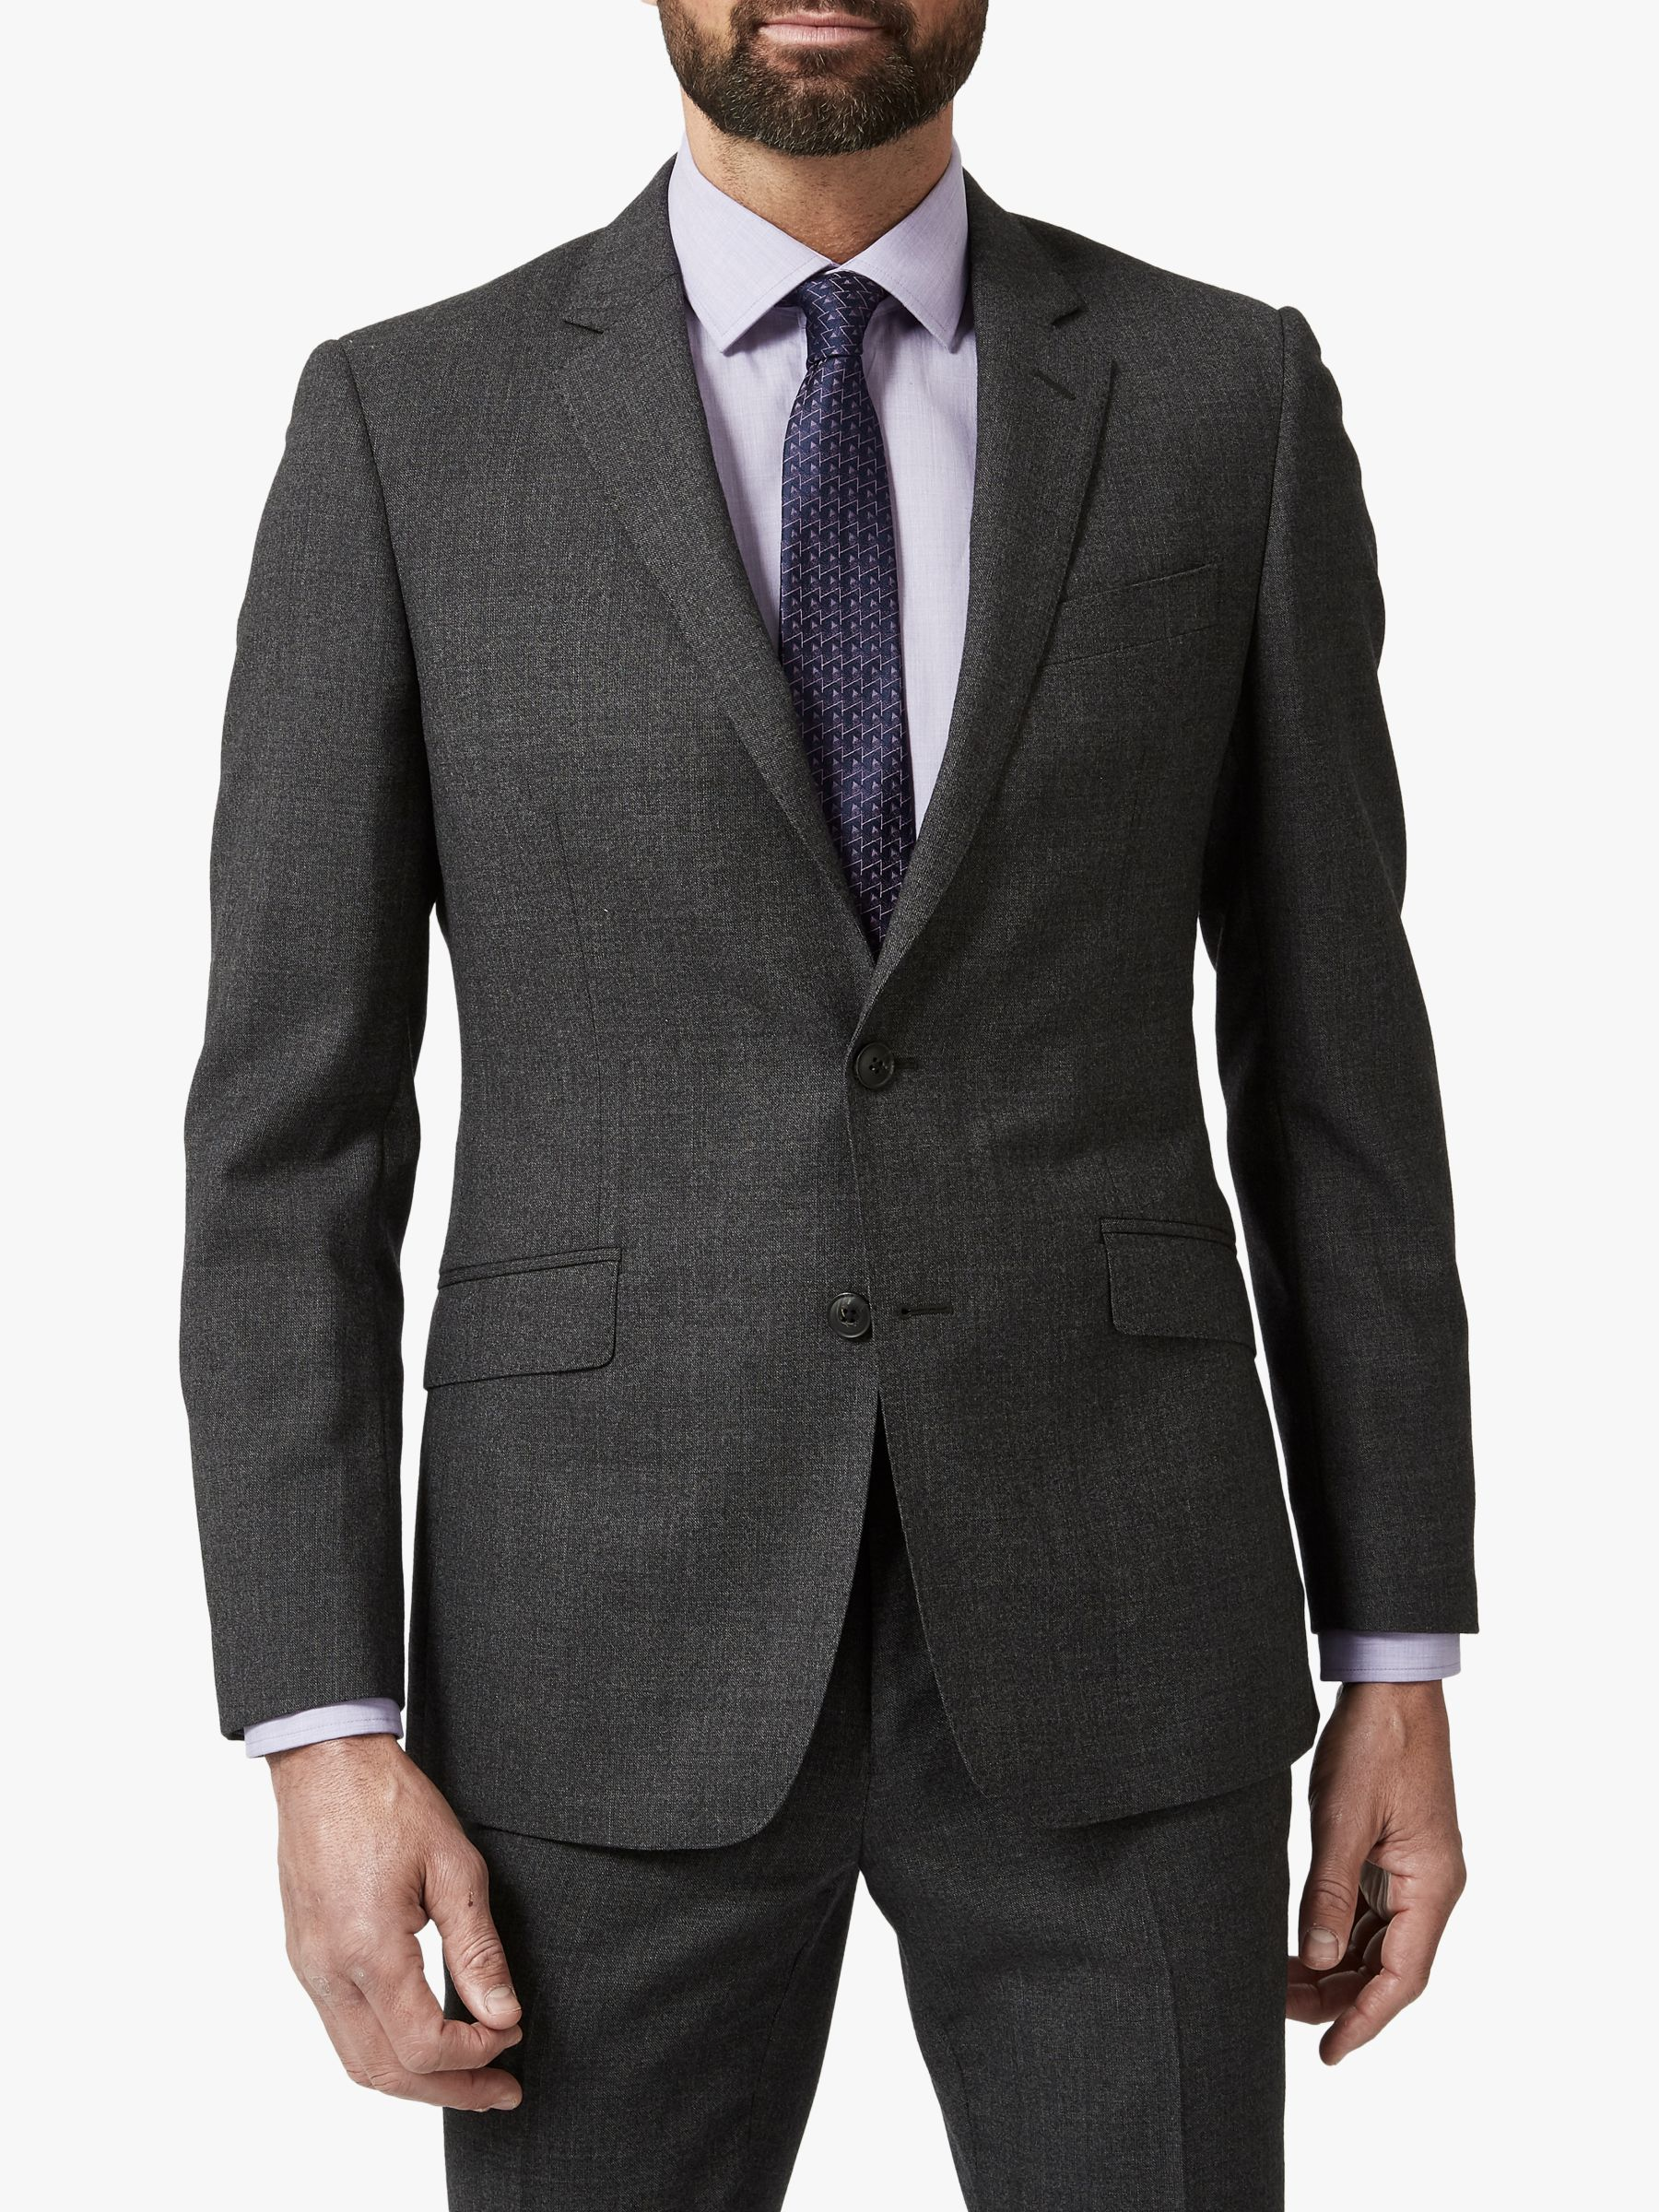 Richard James Mayfair Richard James Mayfair Melange Flannel Wool Tailored Suit Jacket, Charcoal